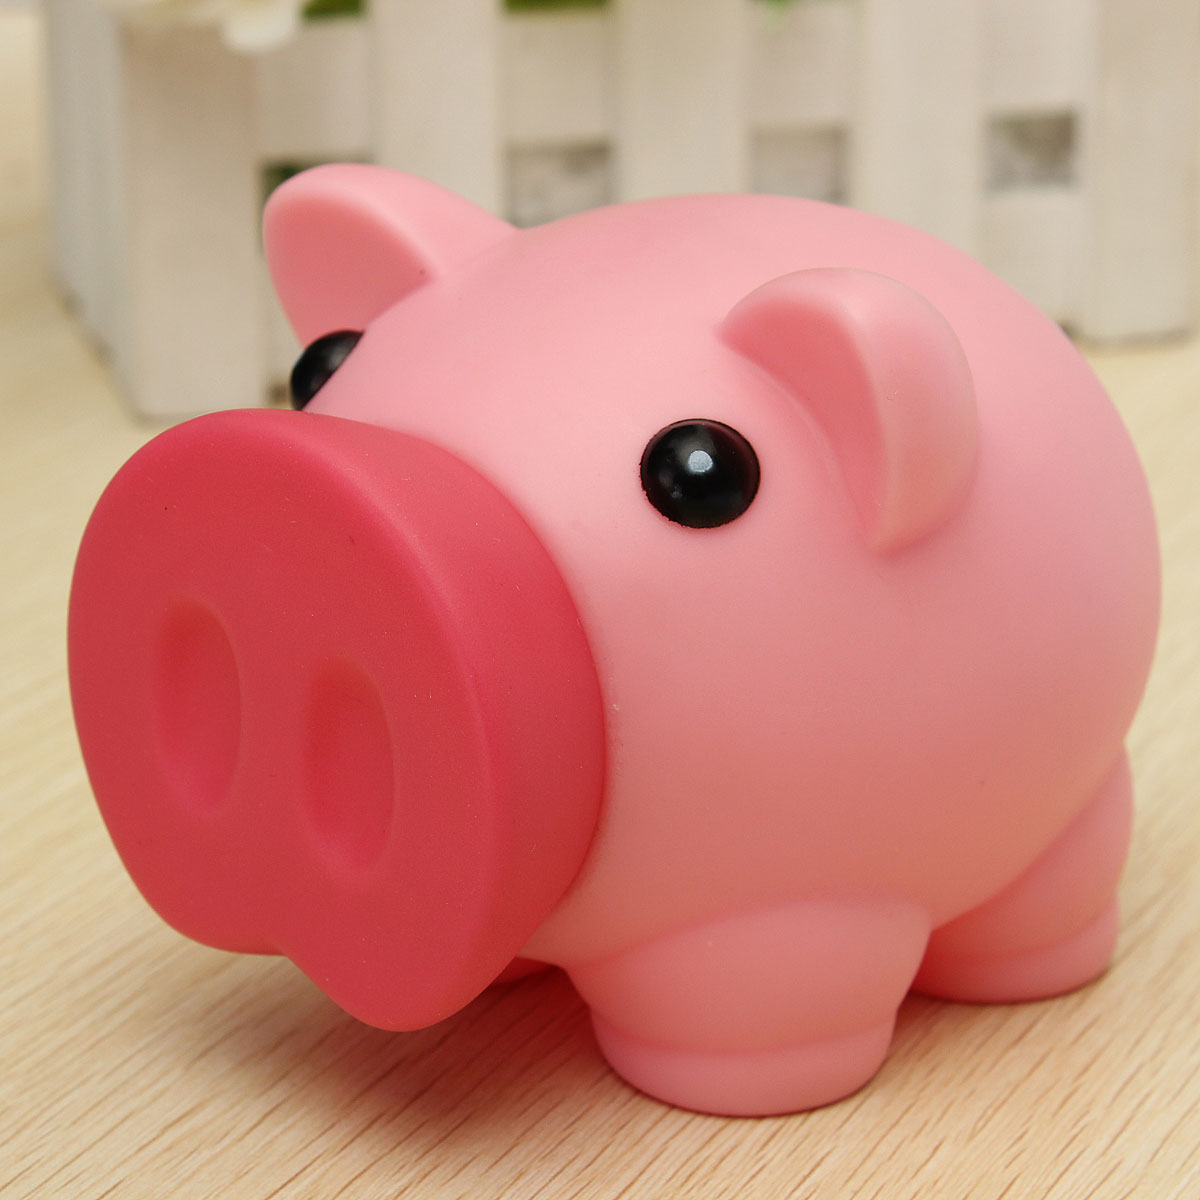 Breakageproof cute plastic animal piggy bank saving cash Plastic piggy banks for kids